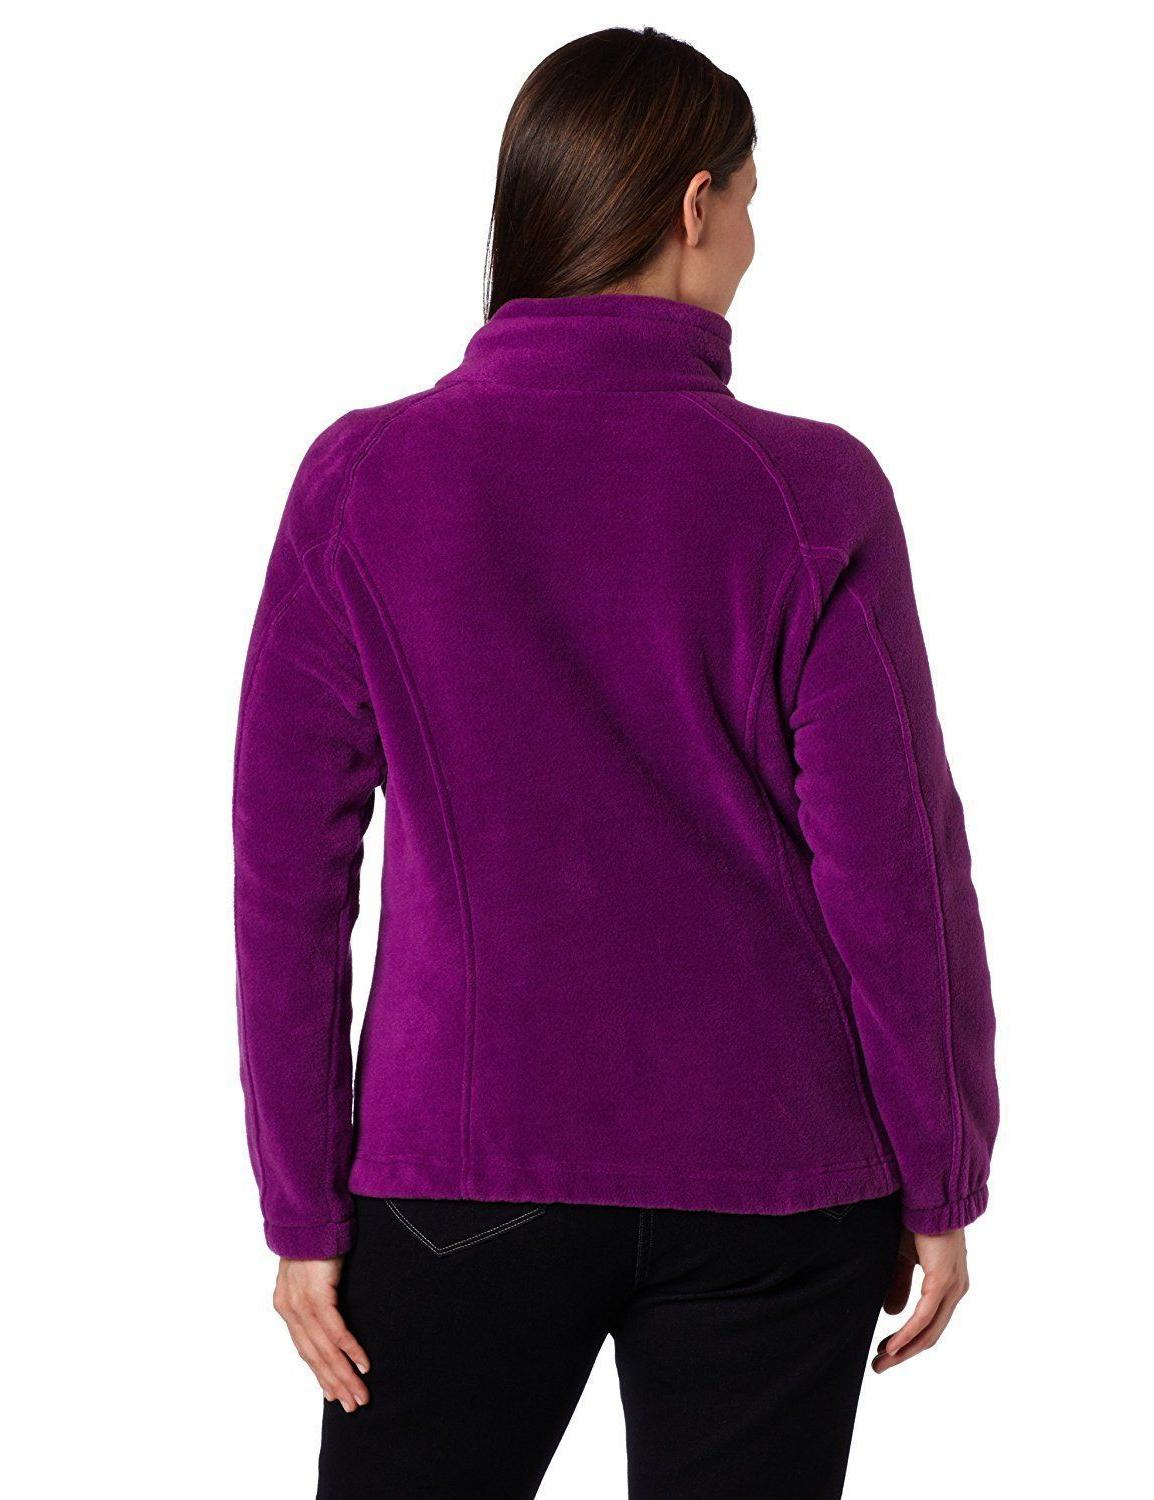 AUTHENTIC WOMEN's Full-Zip Fleece Jacket